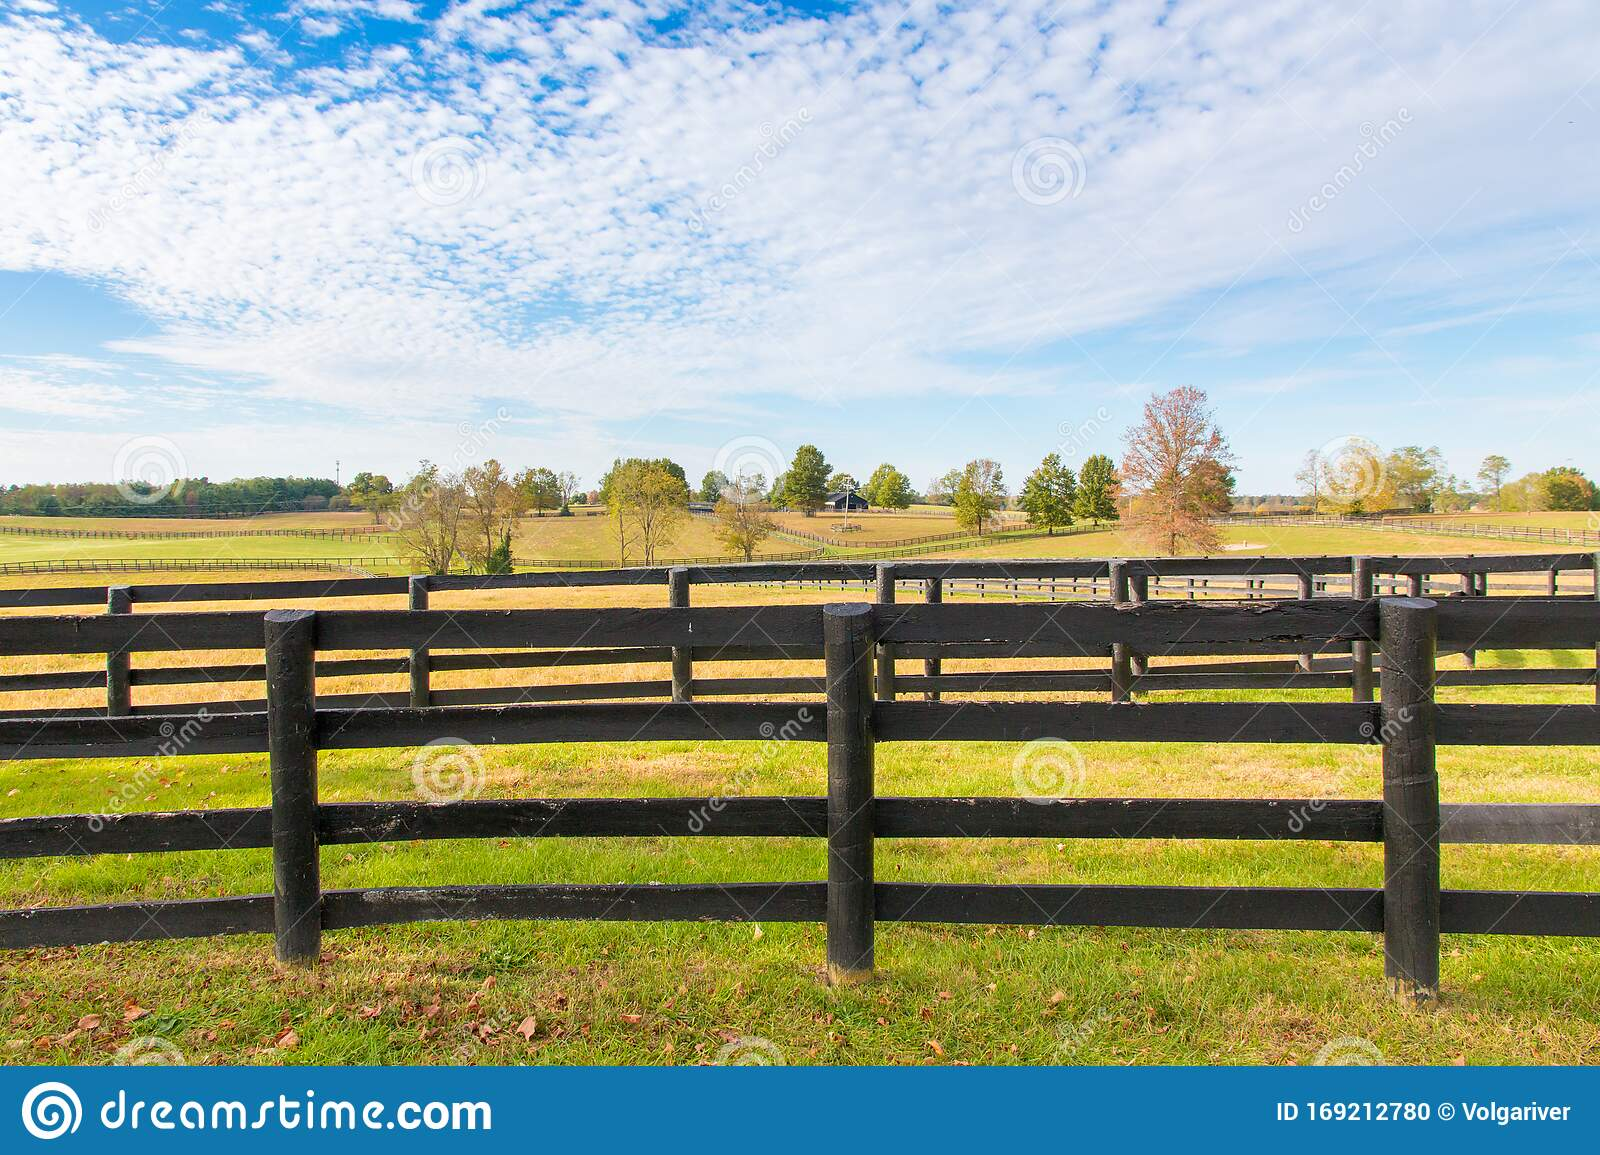 Beautiful Country Landscape With Black Wooden Fence And Pastures Of Horse Farms Stock Photo Image Of Lexington Landscape 169212780